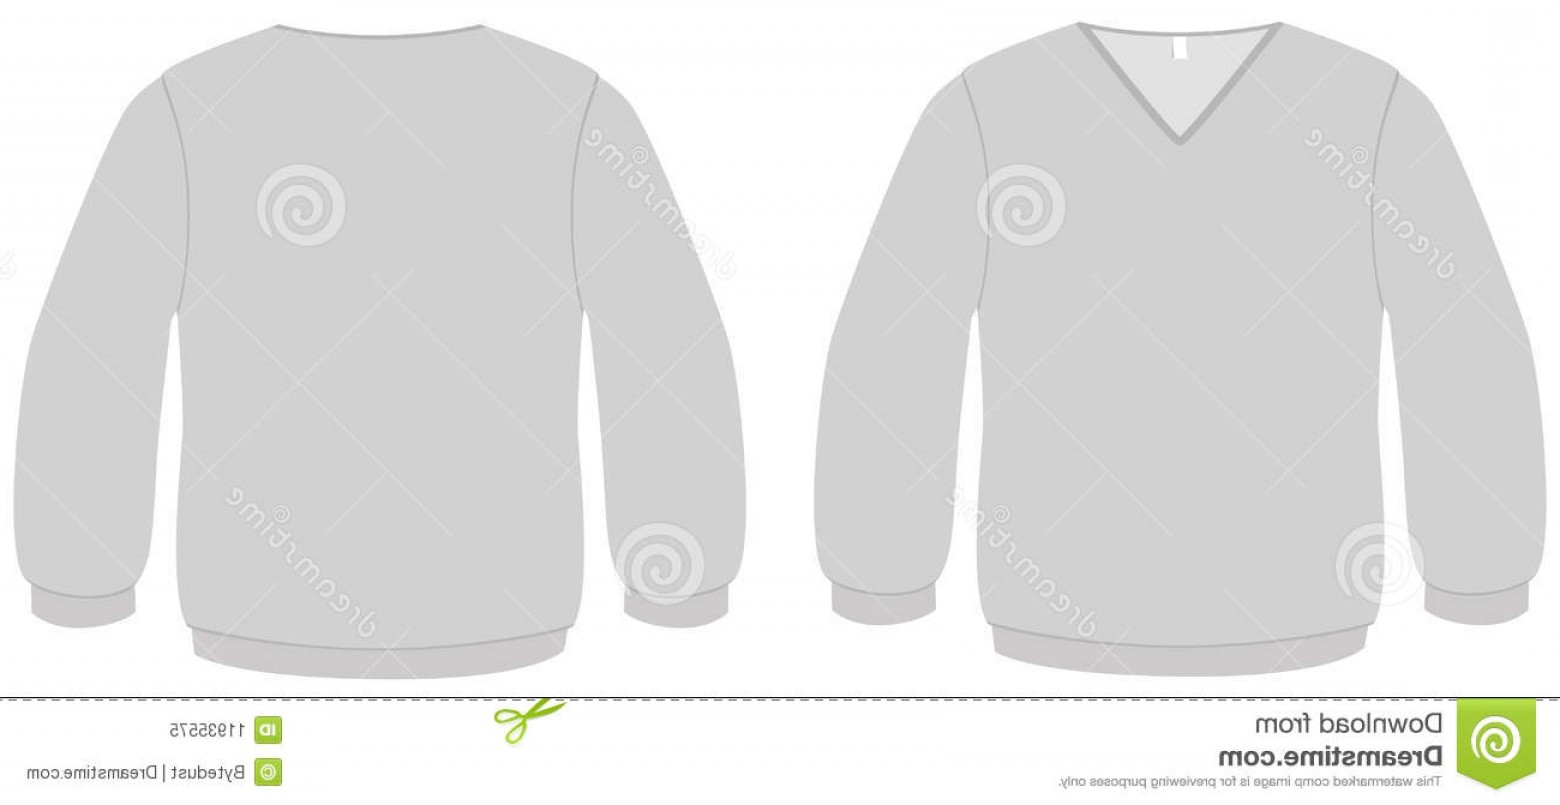 V-Neck Template Vector: Royalty Free Stock Photo V Neck Sweater Template Vector Illustration Image